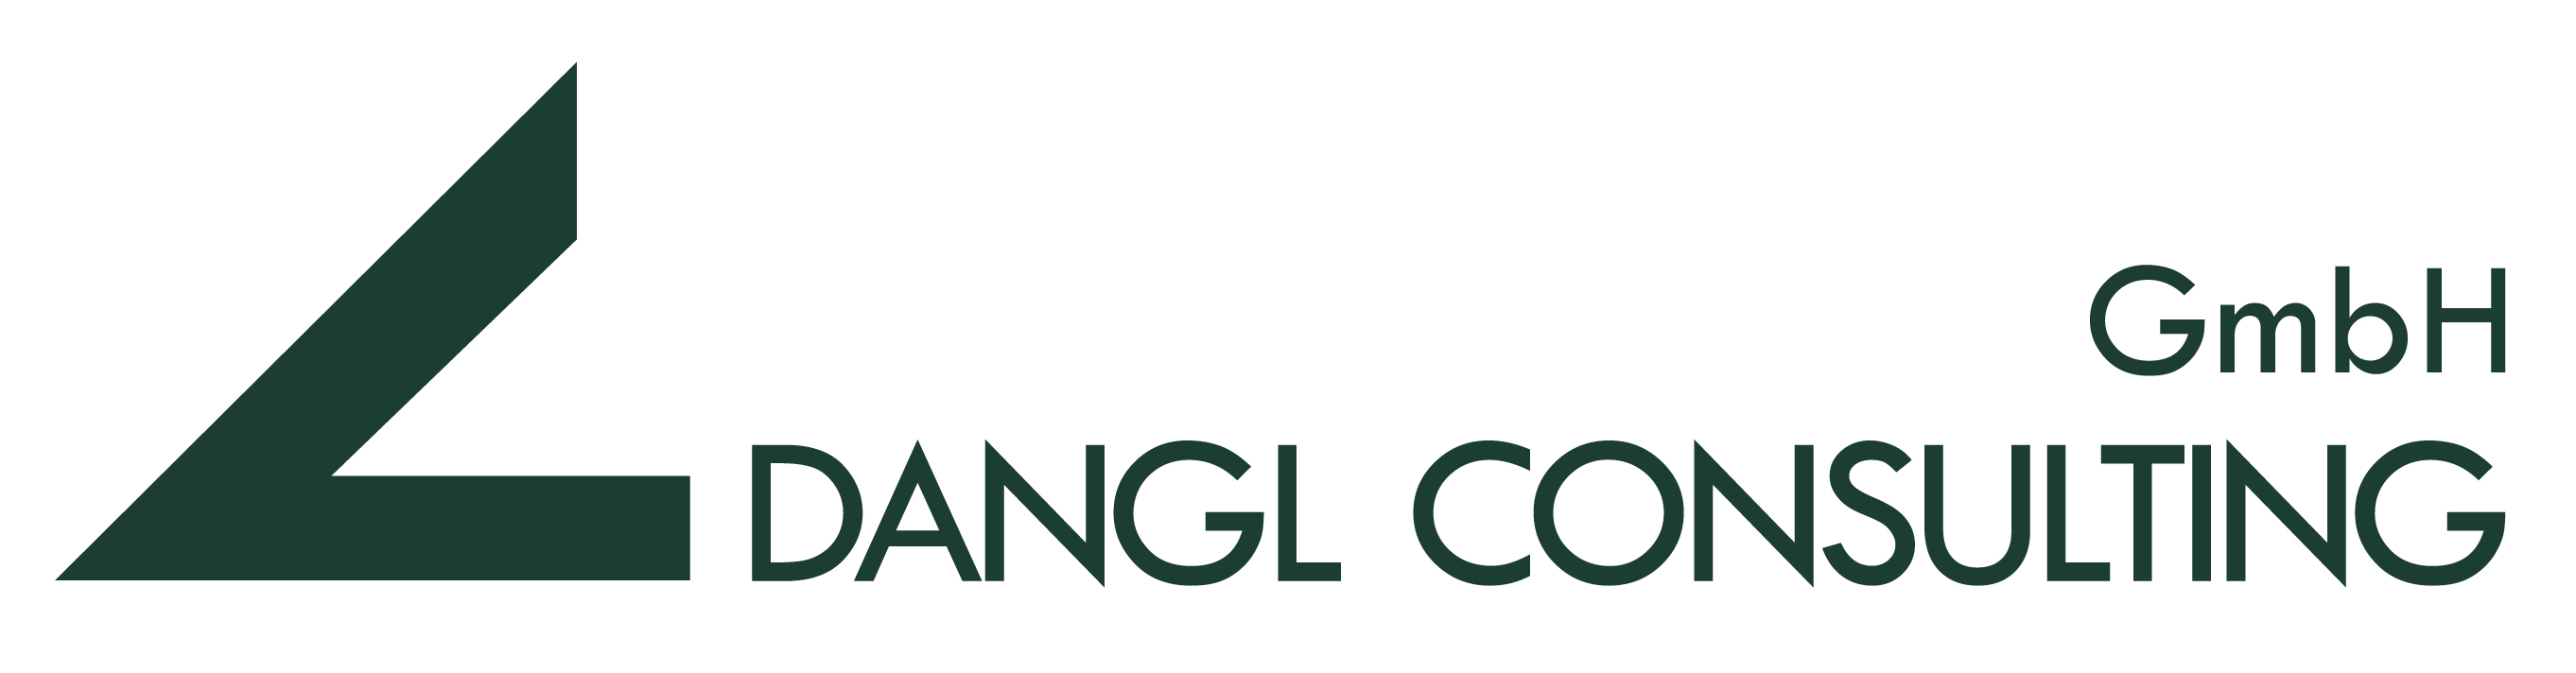 Dangl Consulting GmbH